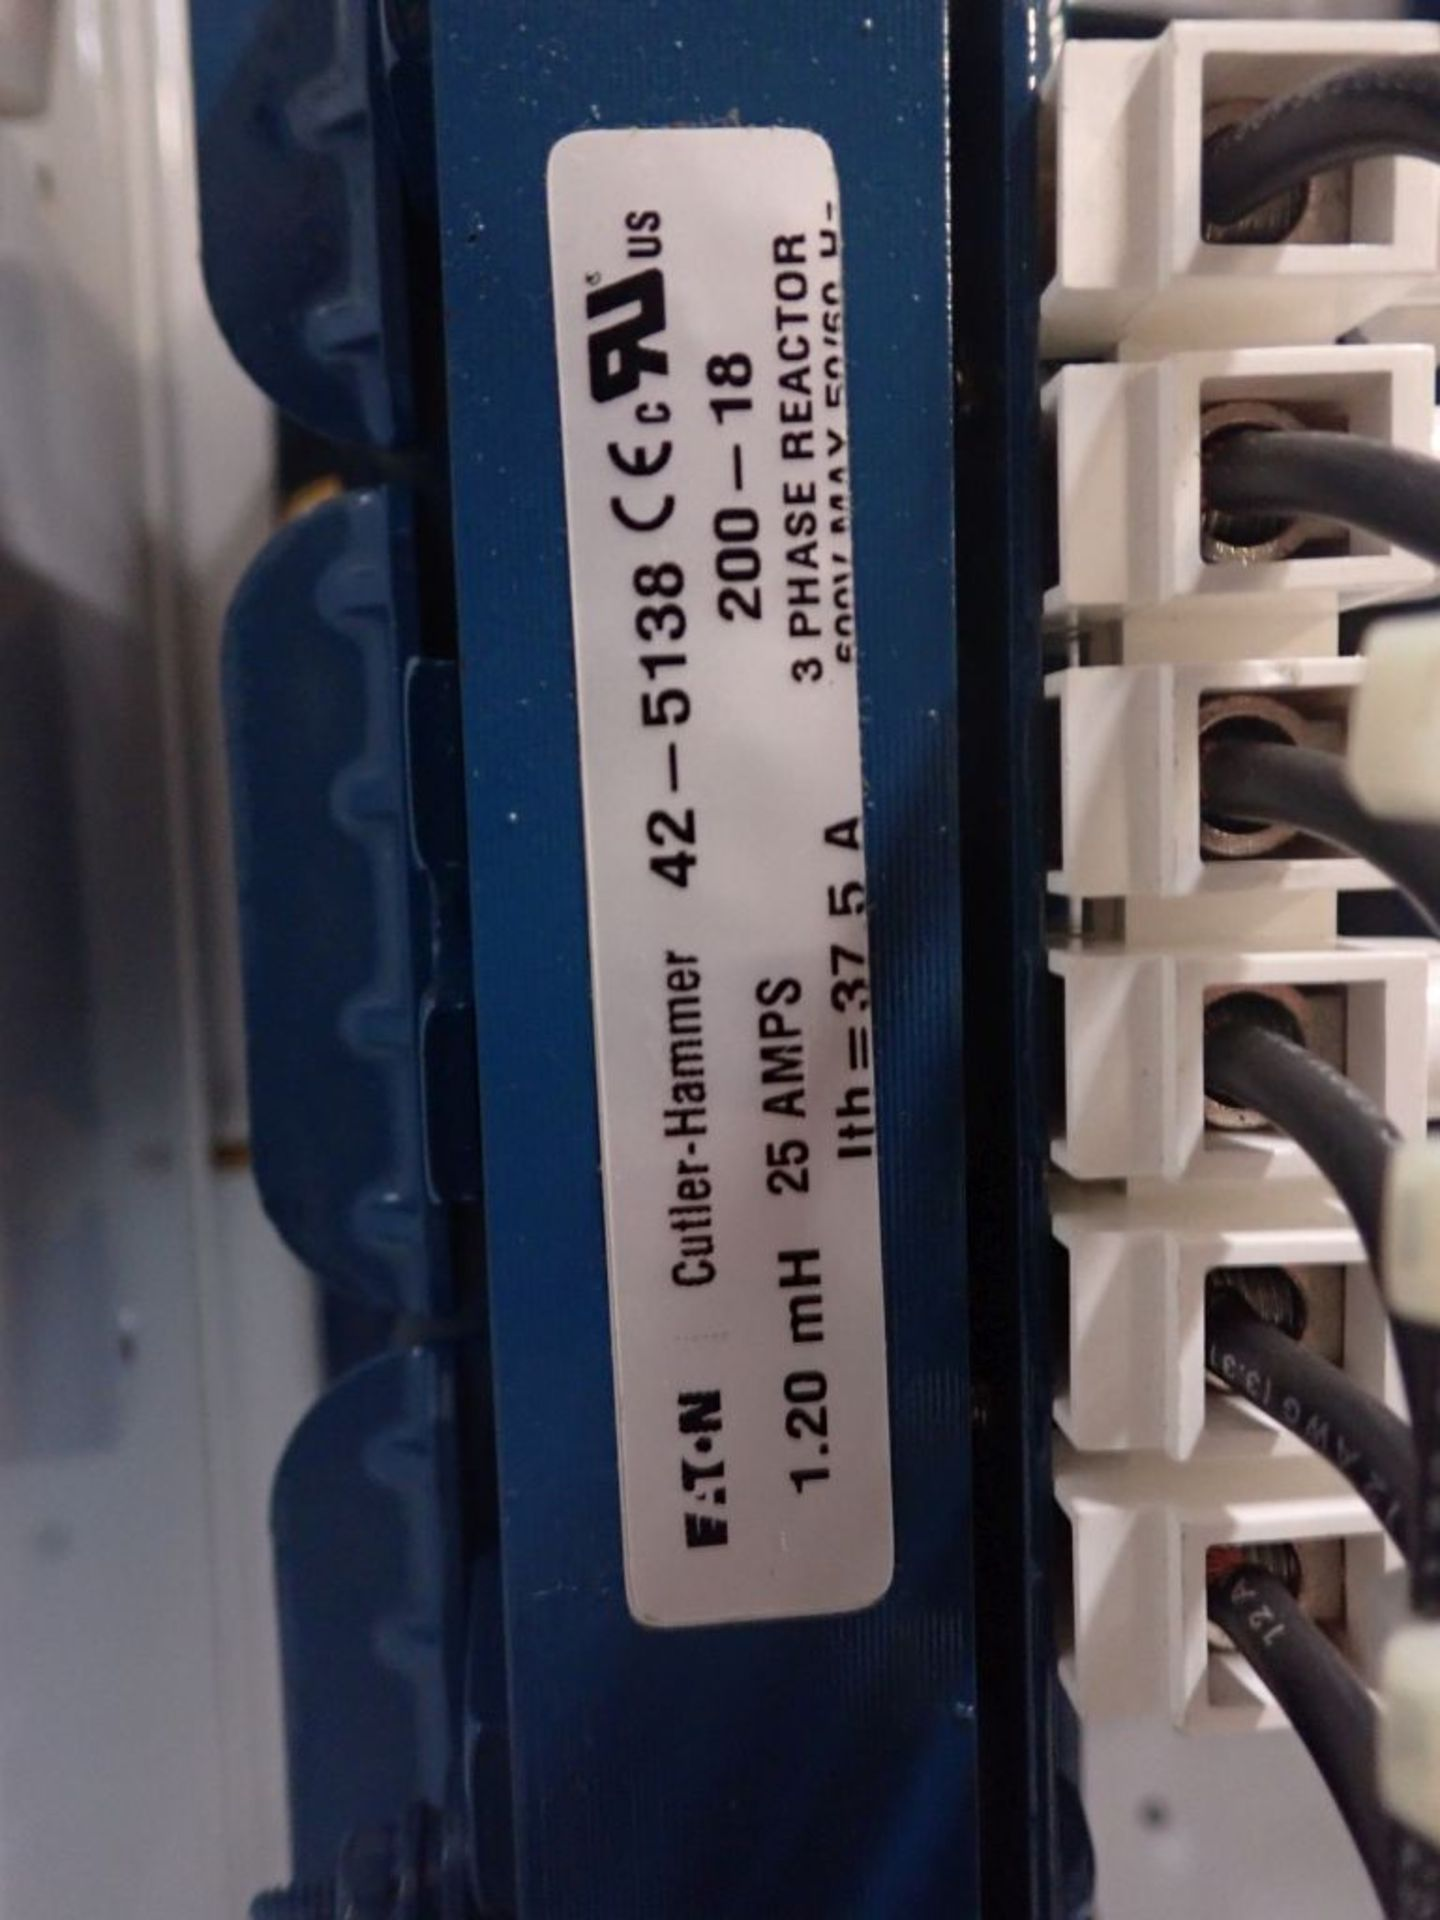 Eaton Freedom 2100 Series Motor Control Center   (4) SVX900-30A, with Eaton AF Drives, SVX9000, - Image 42 of 60